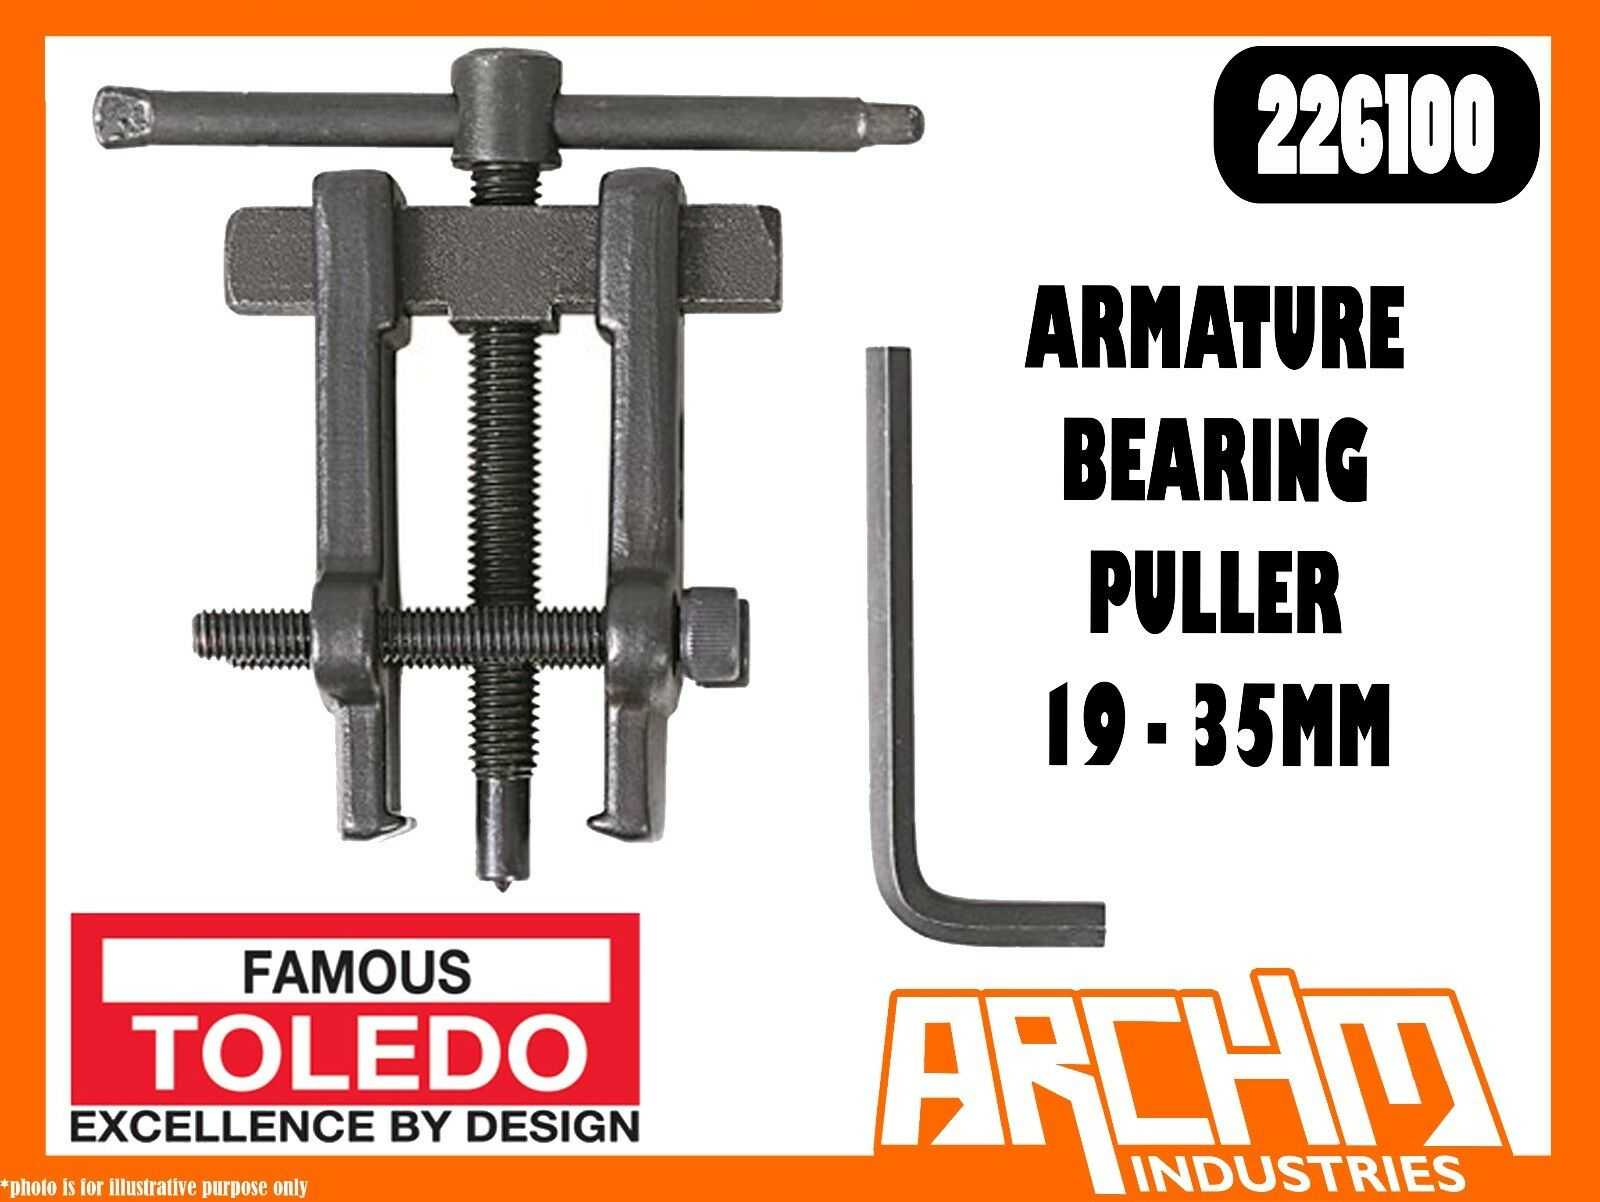 TOLEDO 226100 - ARMATURE BEARING PULLER 19 - 35MM - GEARS SHAFTS GENERATORS